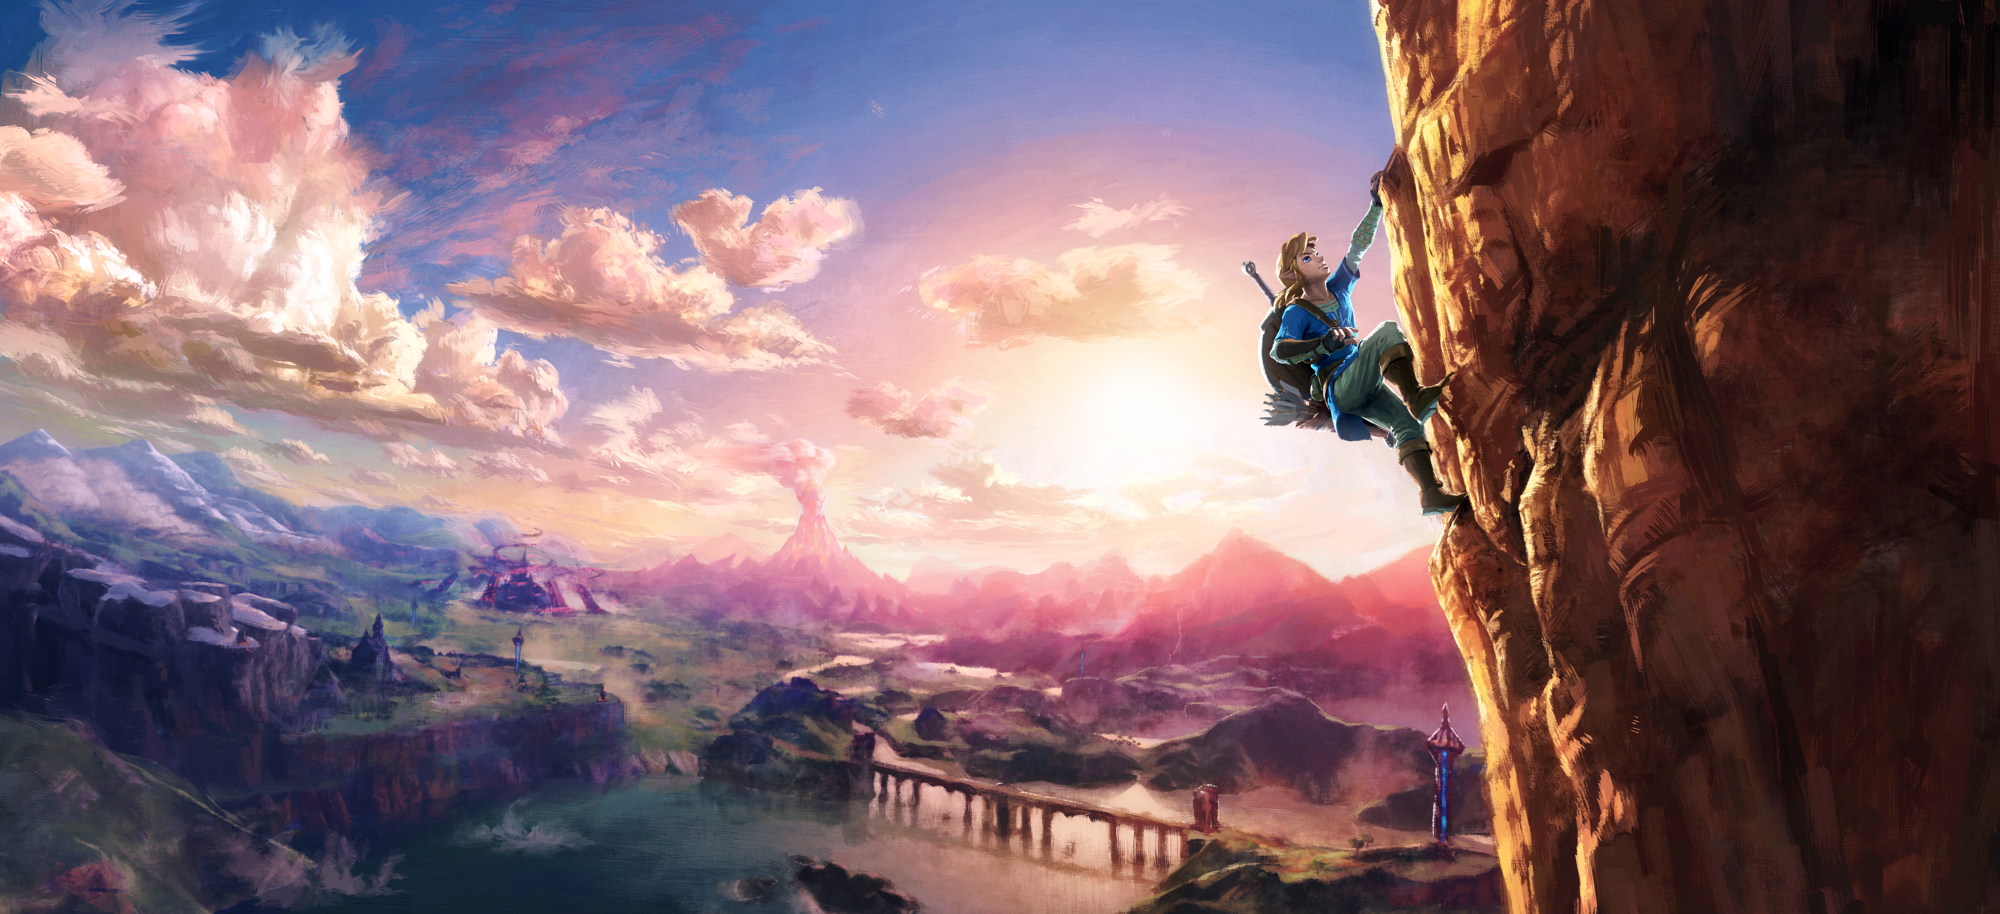 Breath of the Wild' is the boldest 'Zelda' game in years